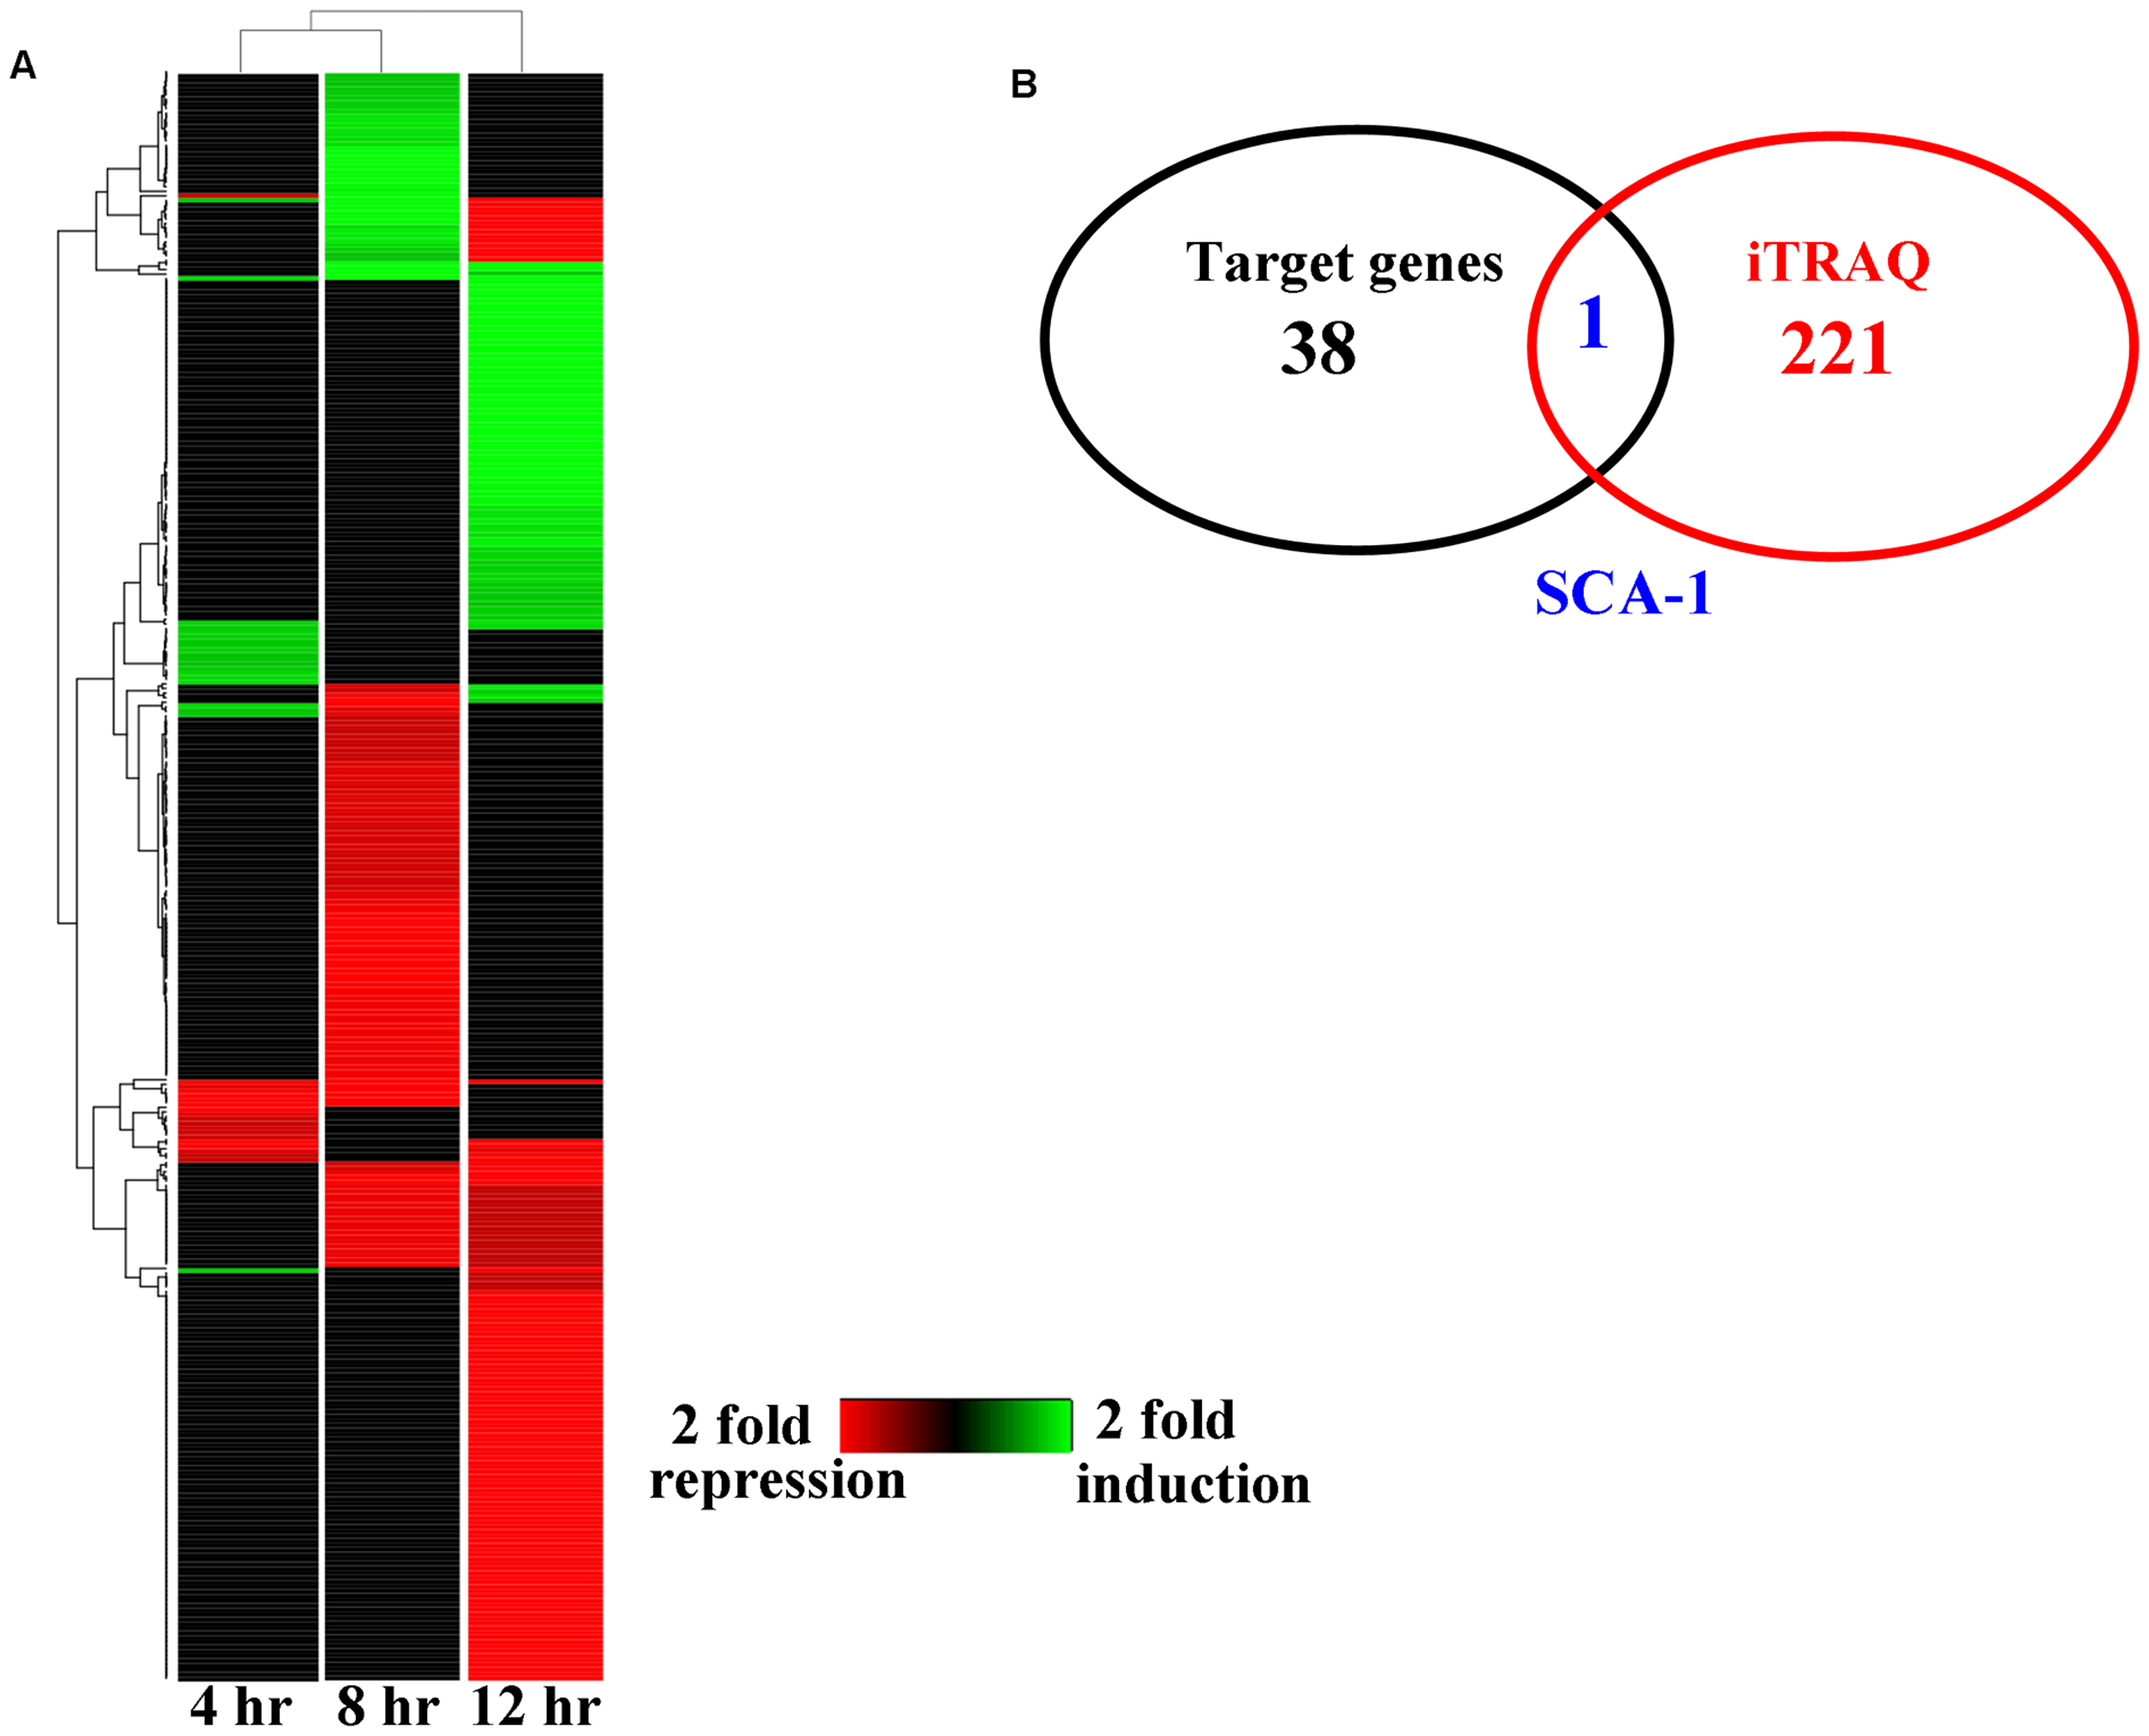 The changes of protein levels in worms after <i>P. aeruginosa</i> infection.